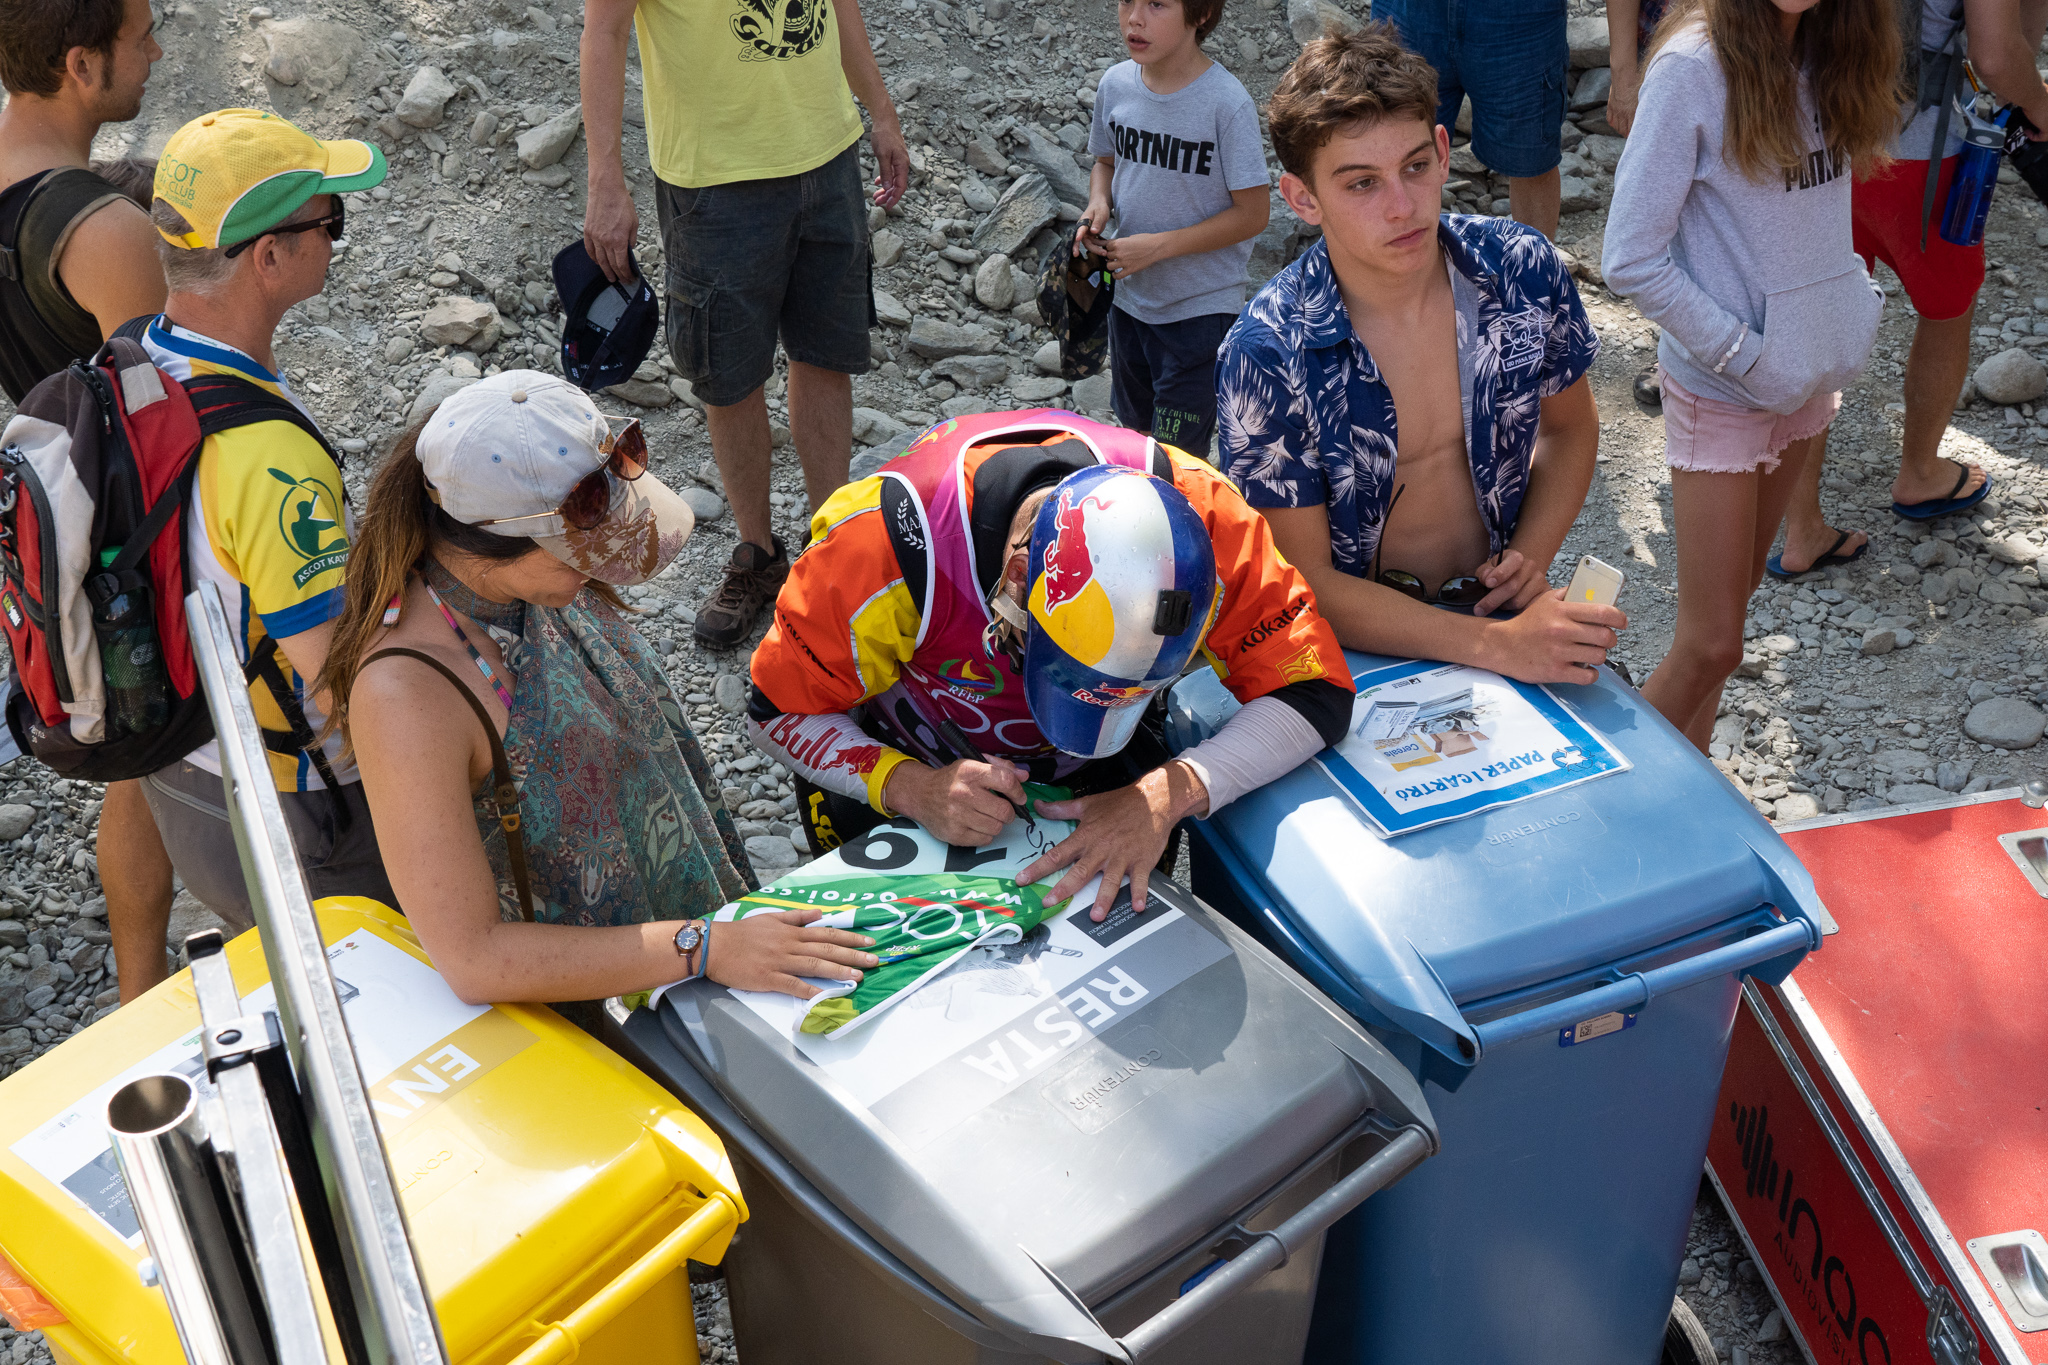 Just minutes before he takes the gold, Dane Jackson makes time to autograph a bib for a fan. ©Peter Holcombe: kayaksession.com